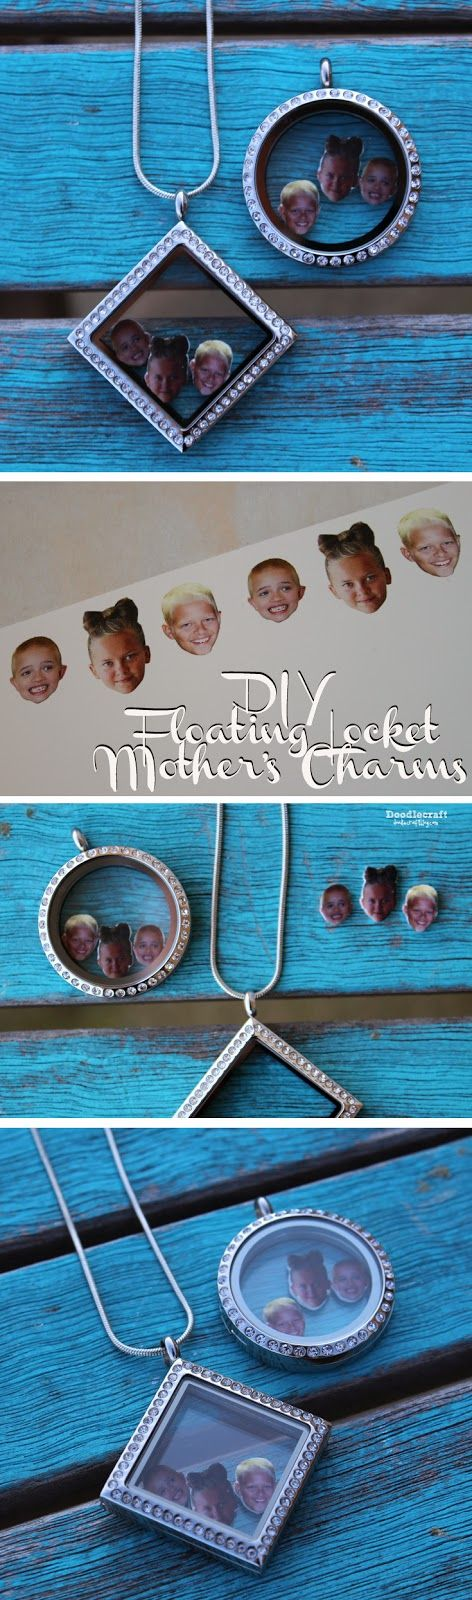 DIY Mother's Charms for Floating Locket Necklace